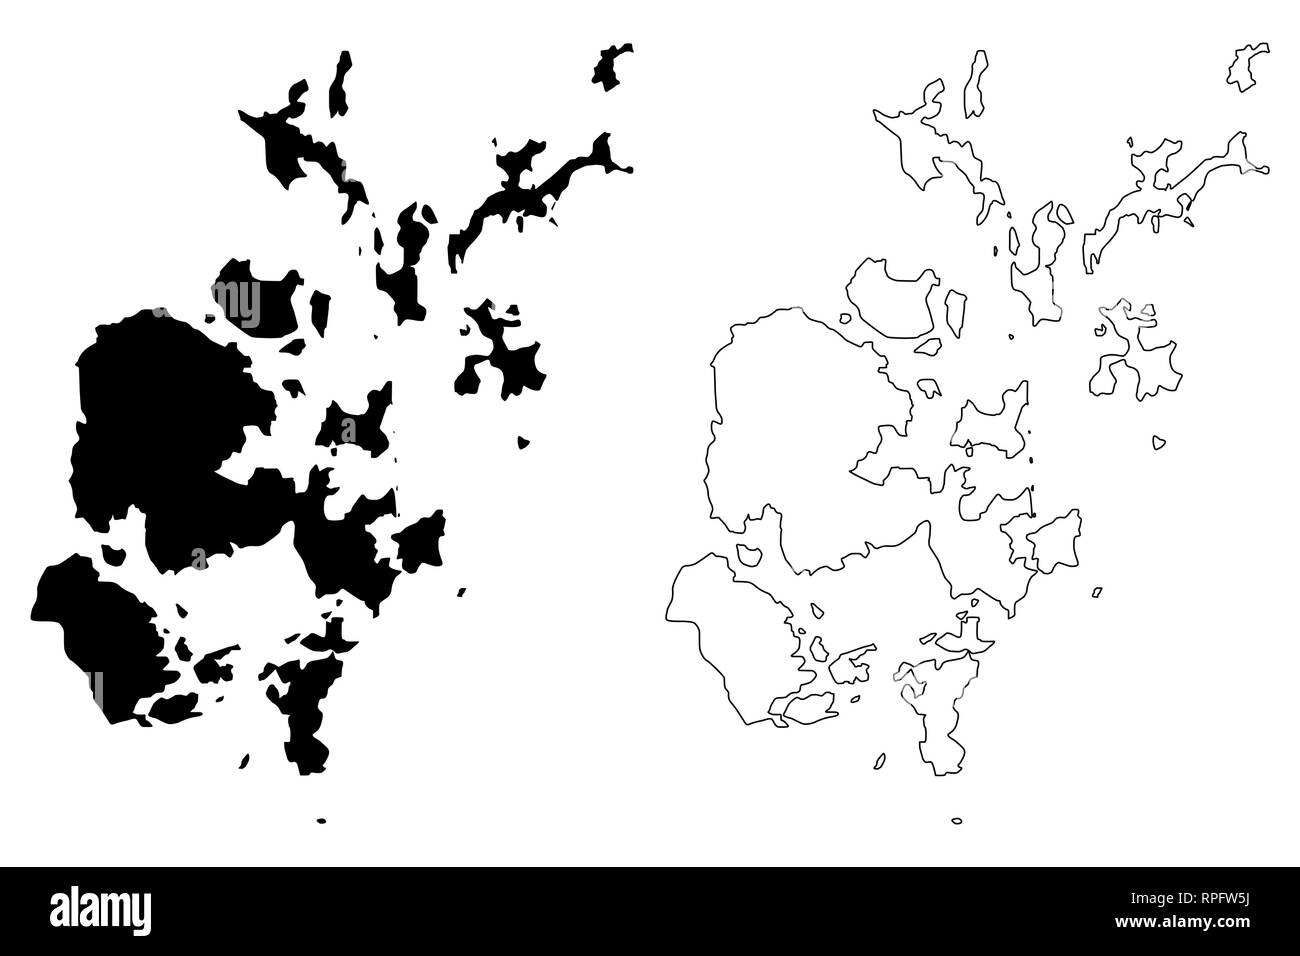 Orkney Islands (United Kingdom, Scotland, Local government in Scotland) map vector illustration, scribble sketch Orkney (Northern Isles) map - Stock Vector